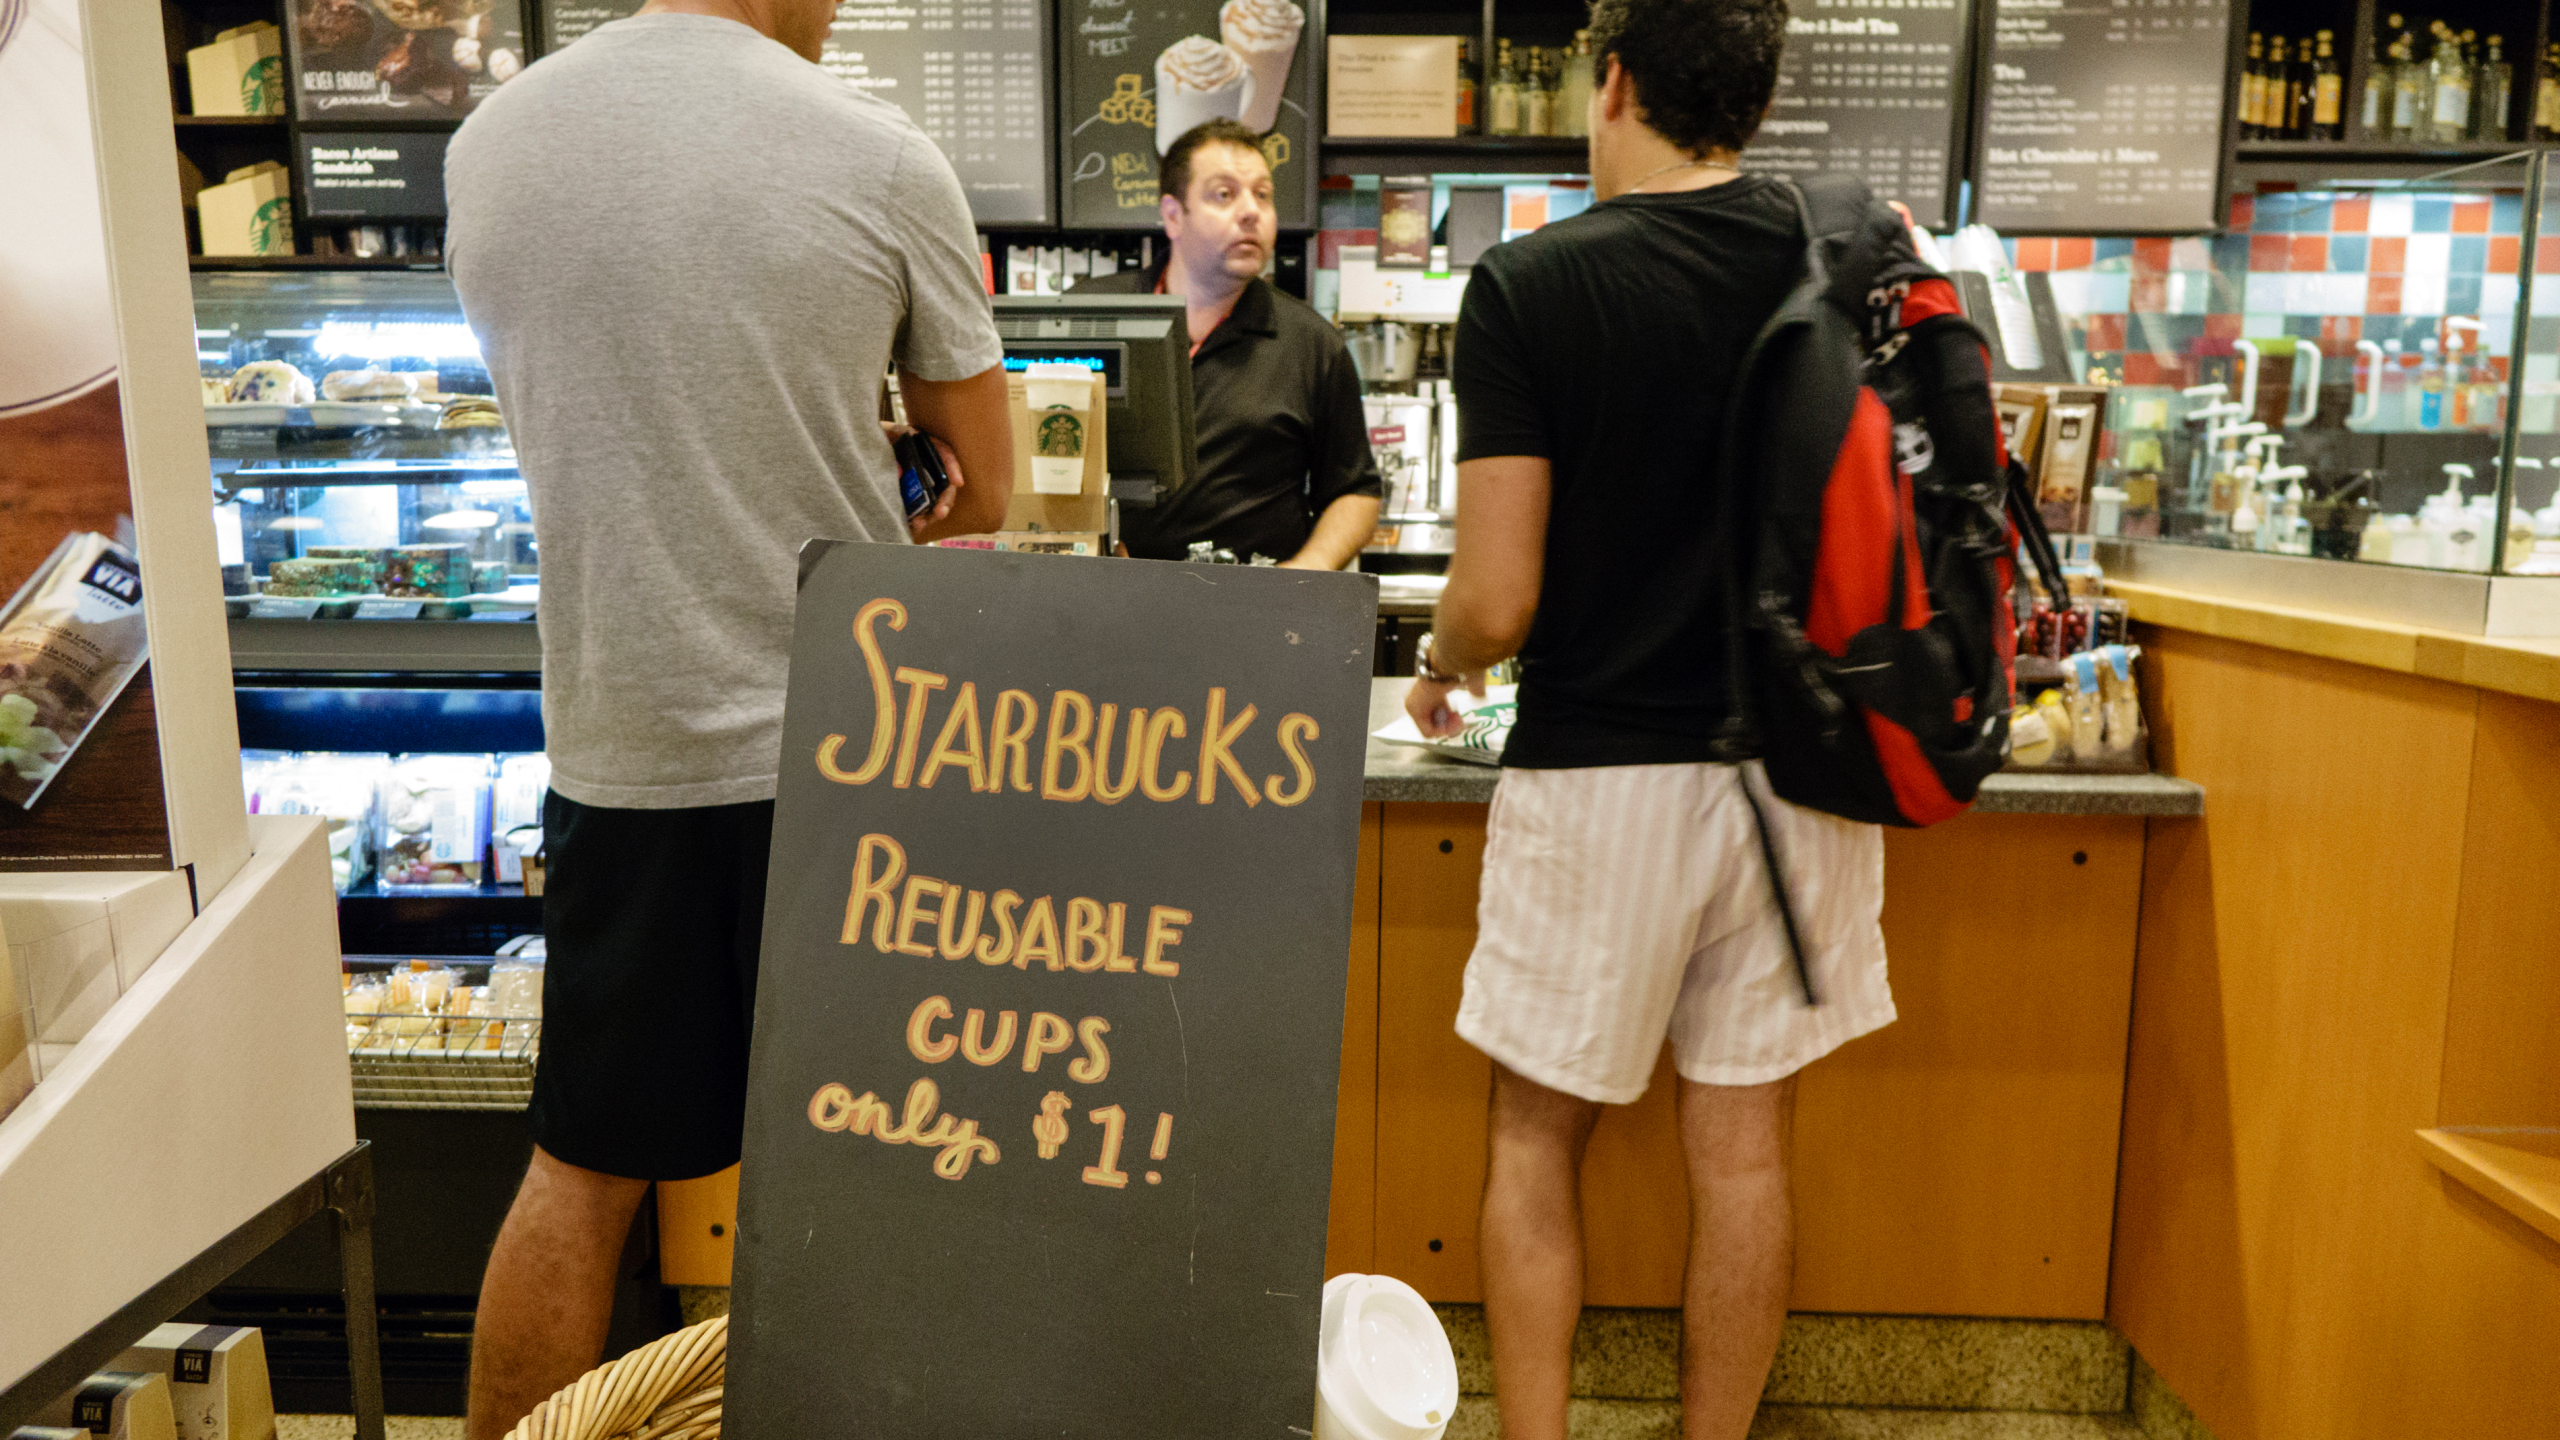 Starbucks forced to halt the use of personal cups at its stores 2560x1440